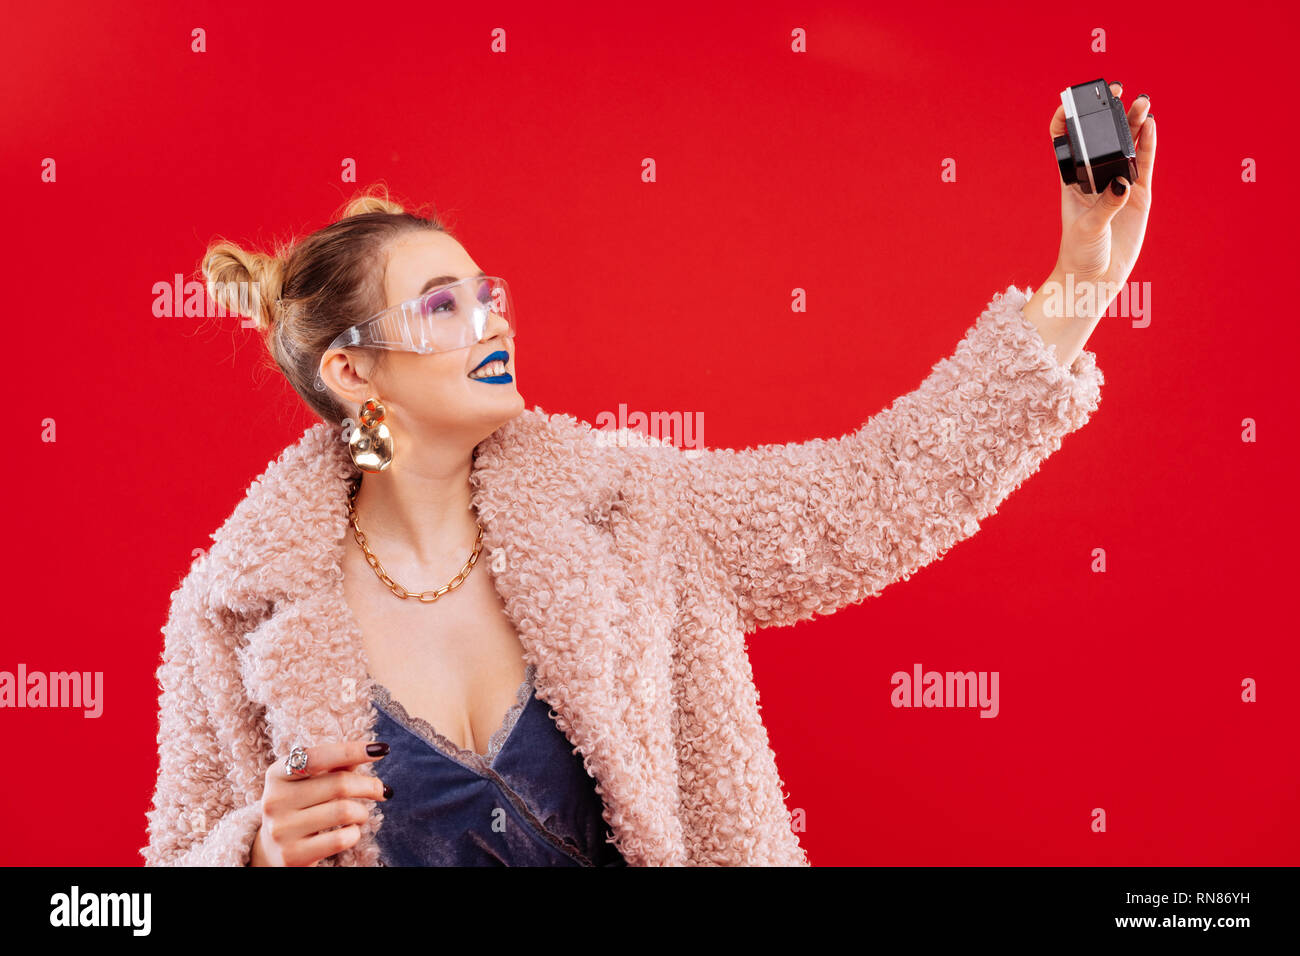 Fashionable woman with blue lips making selfie using camera - Stock Image